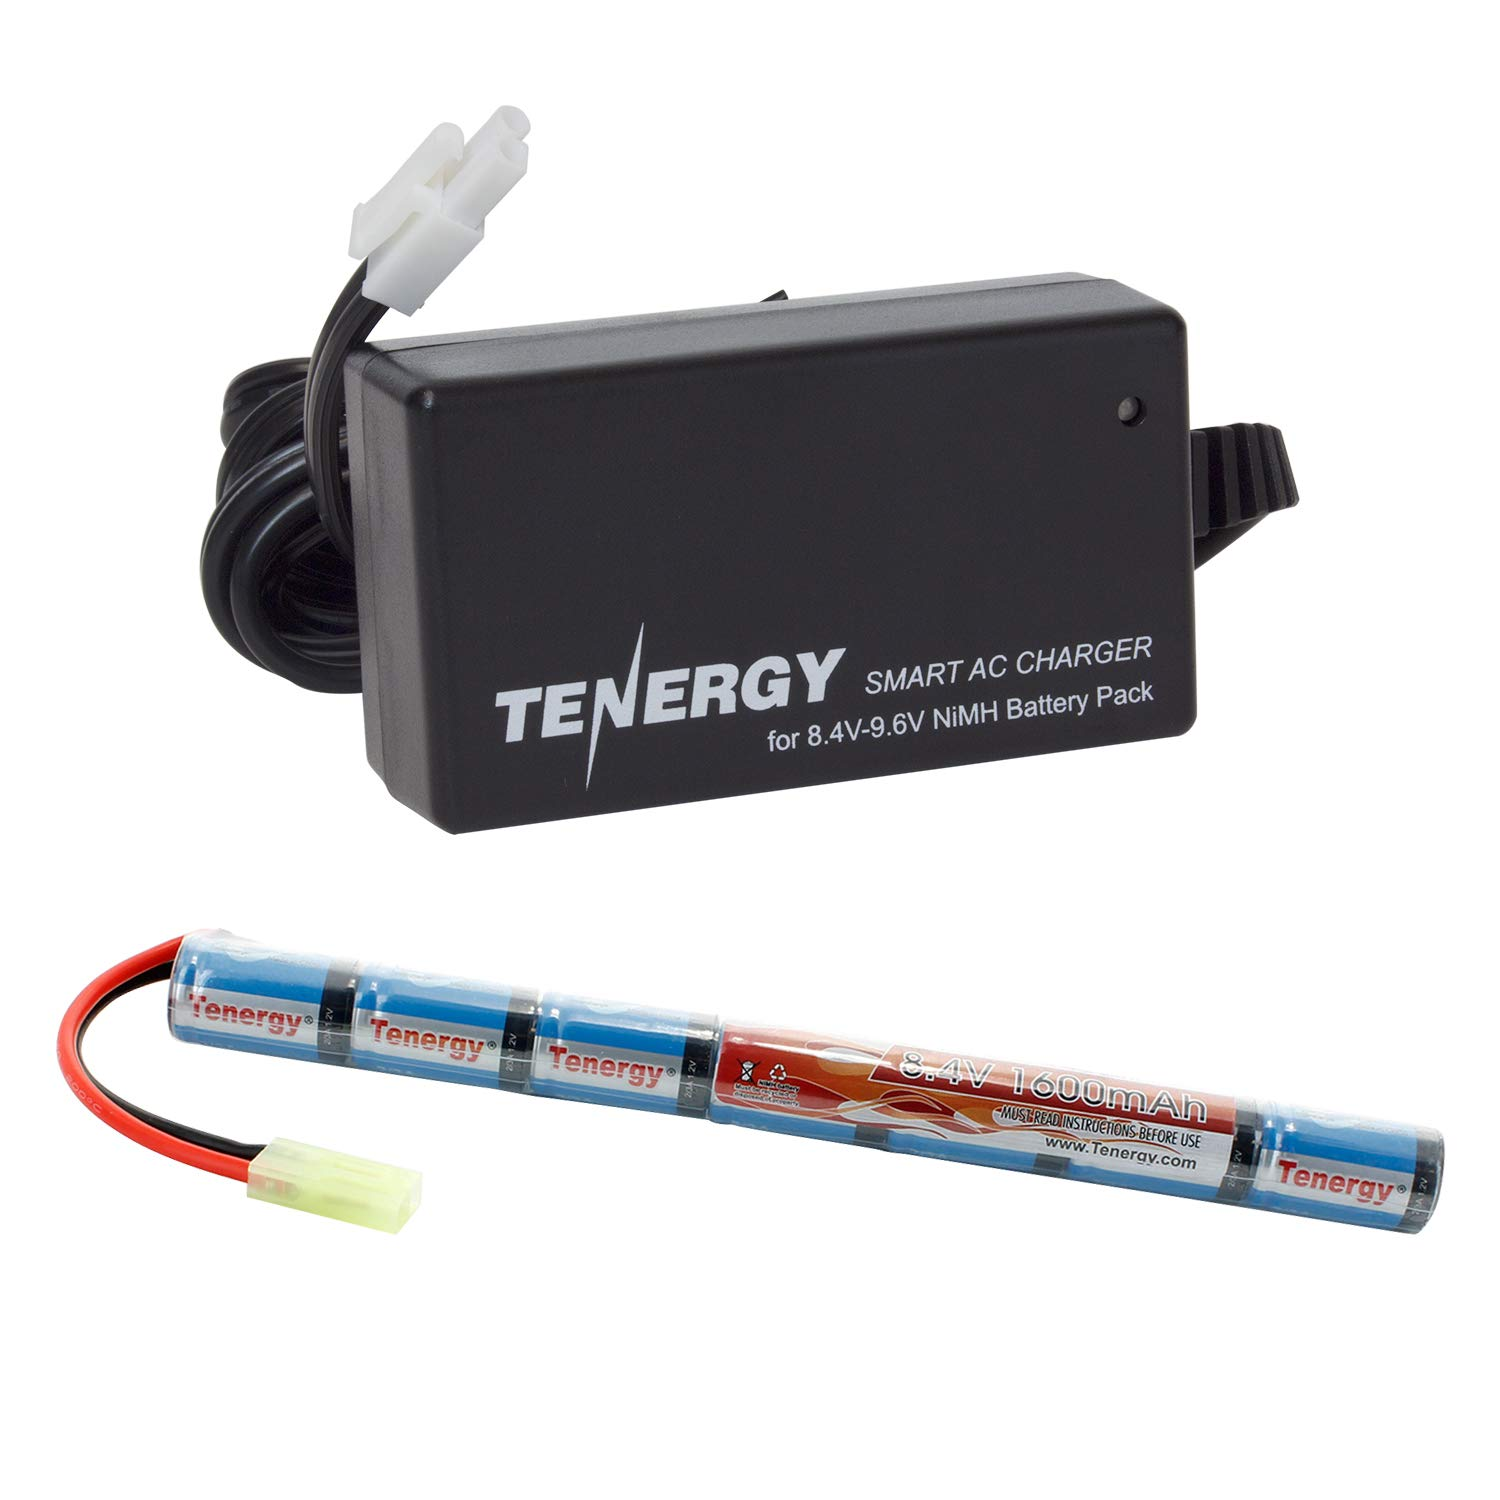 Tenergy Airsoft Battery 8.4V 1600mAh NiMH Stick Battery High Performance Stick Style Batteries w/ Mini Tamiya Connector, Replacement Battery for Airsoft Rifle AEG Guns + 8.4V-9.6V NiMH Battery Charge